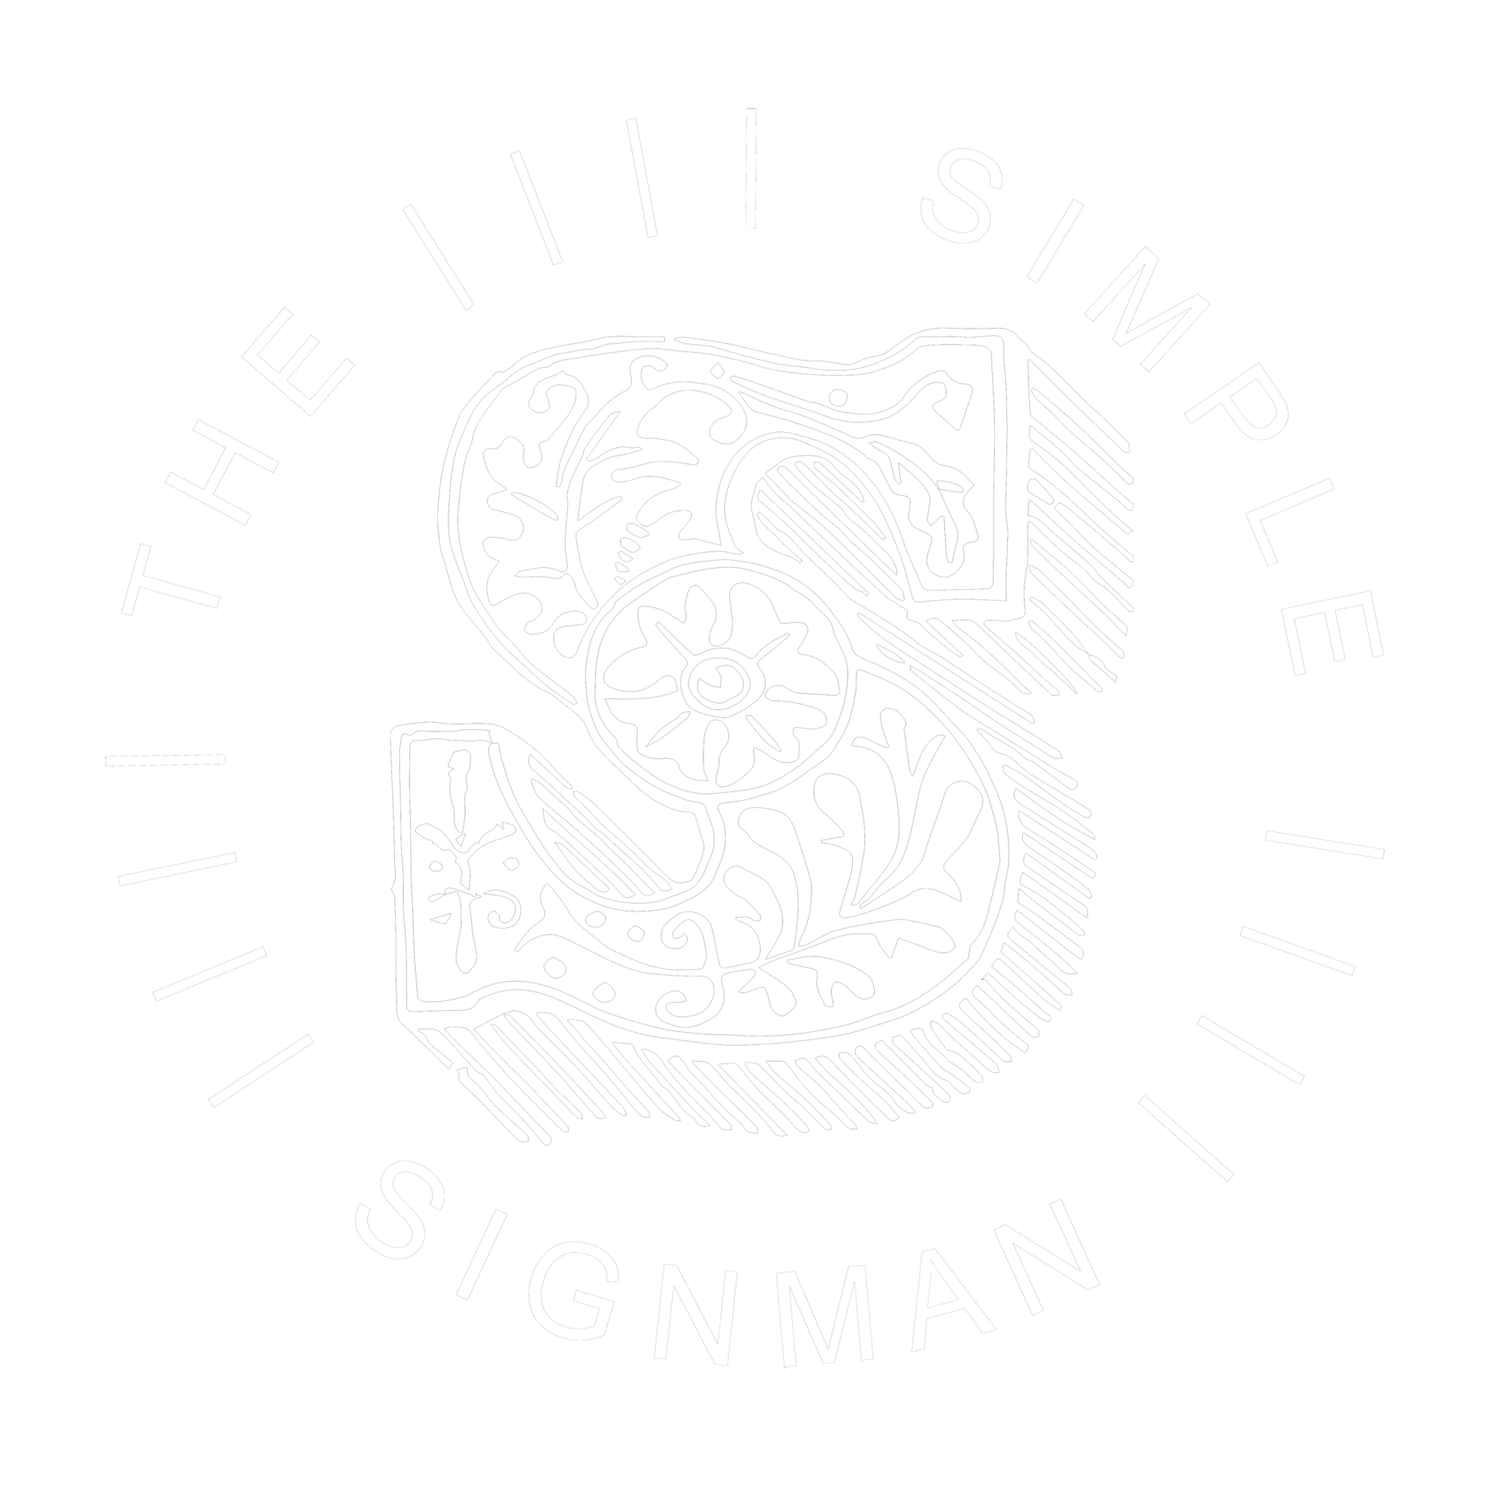 THE SIMPLE SIGNMAN